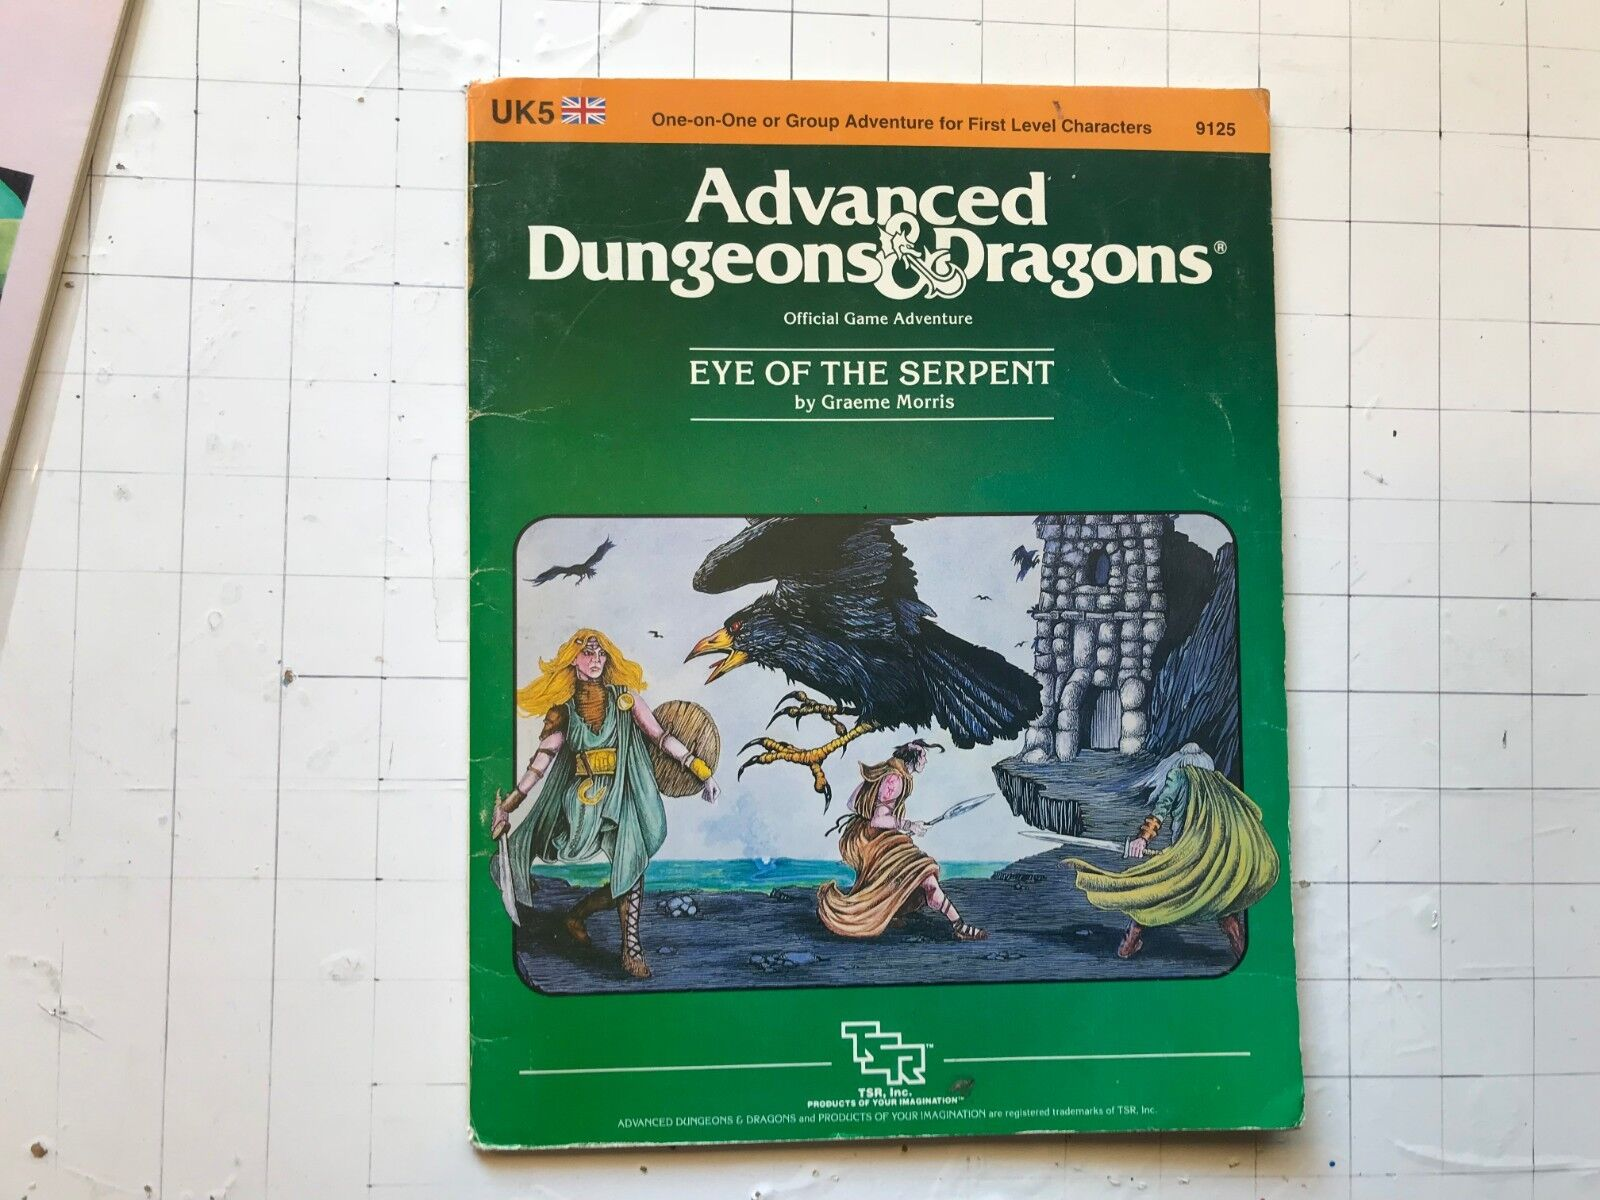 TSR 1st Advanced Dungeon & Draghi 1984 UK5 Eye Of The Serpente D&d Modulo  Rpg